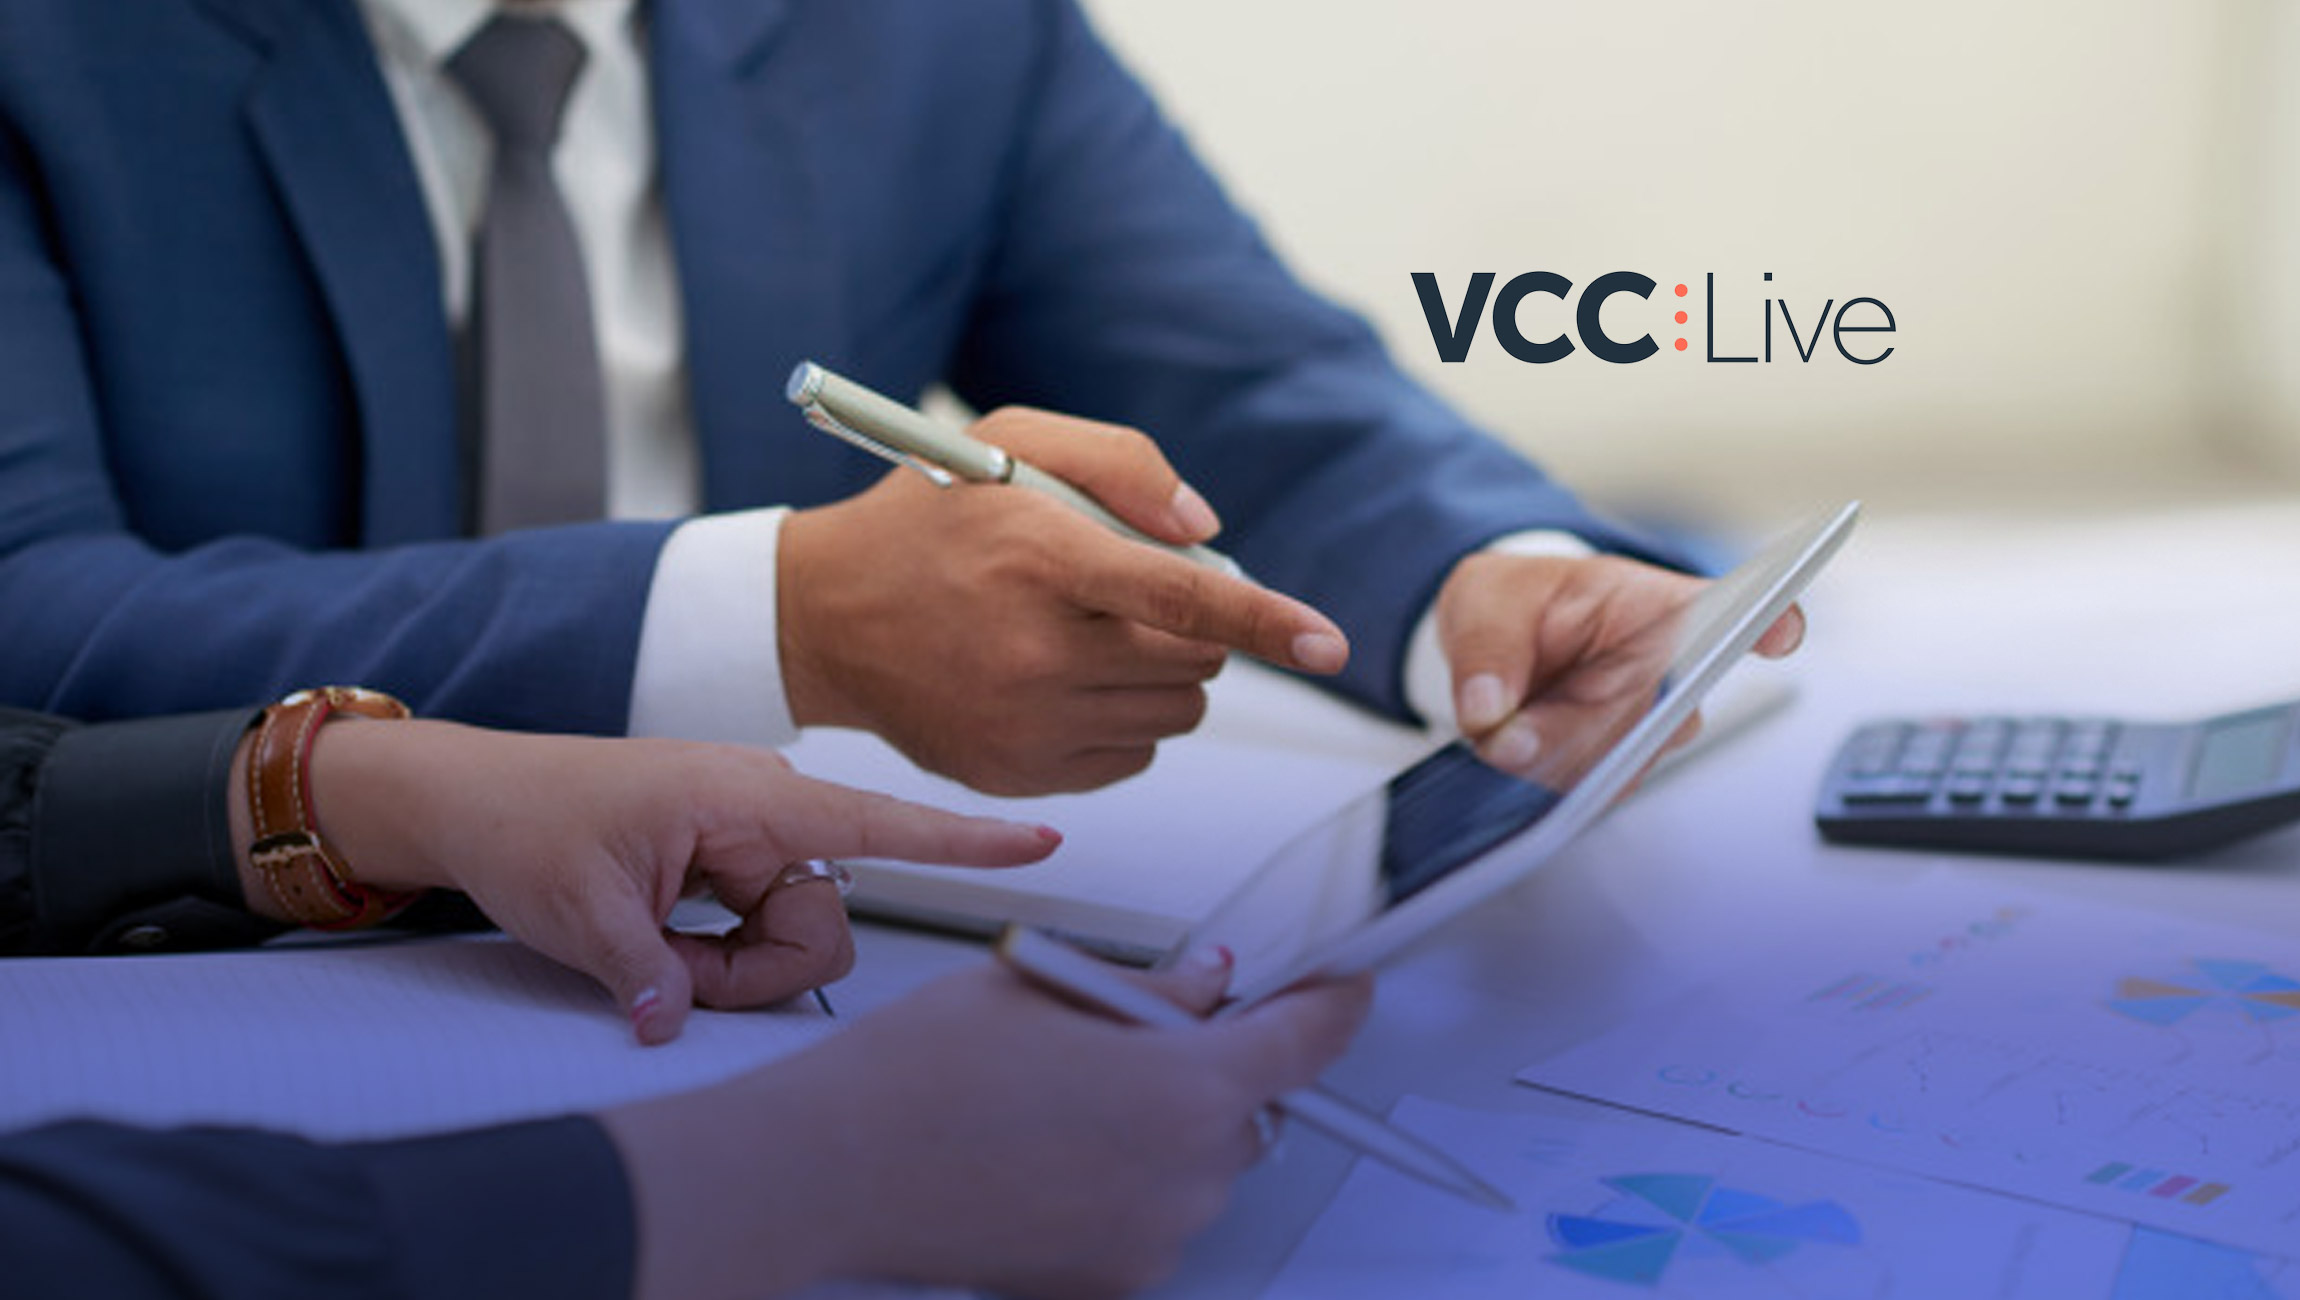 VCC Live Secures $2.4M in Series A Funding From Venture Capi